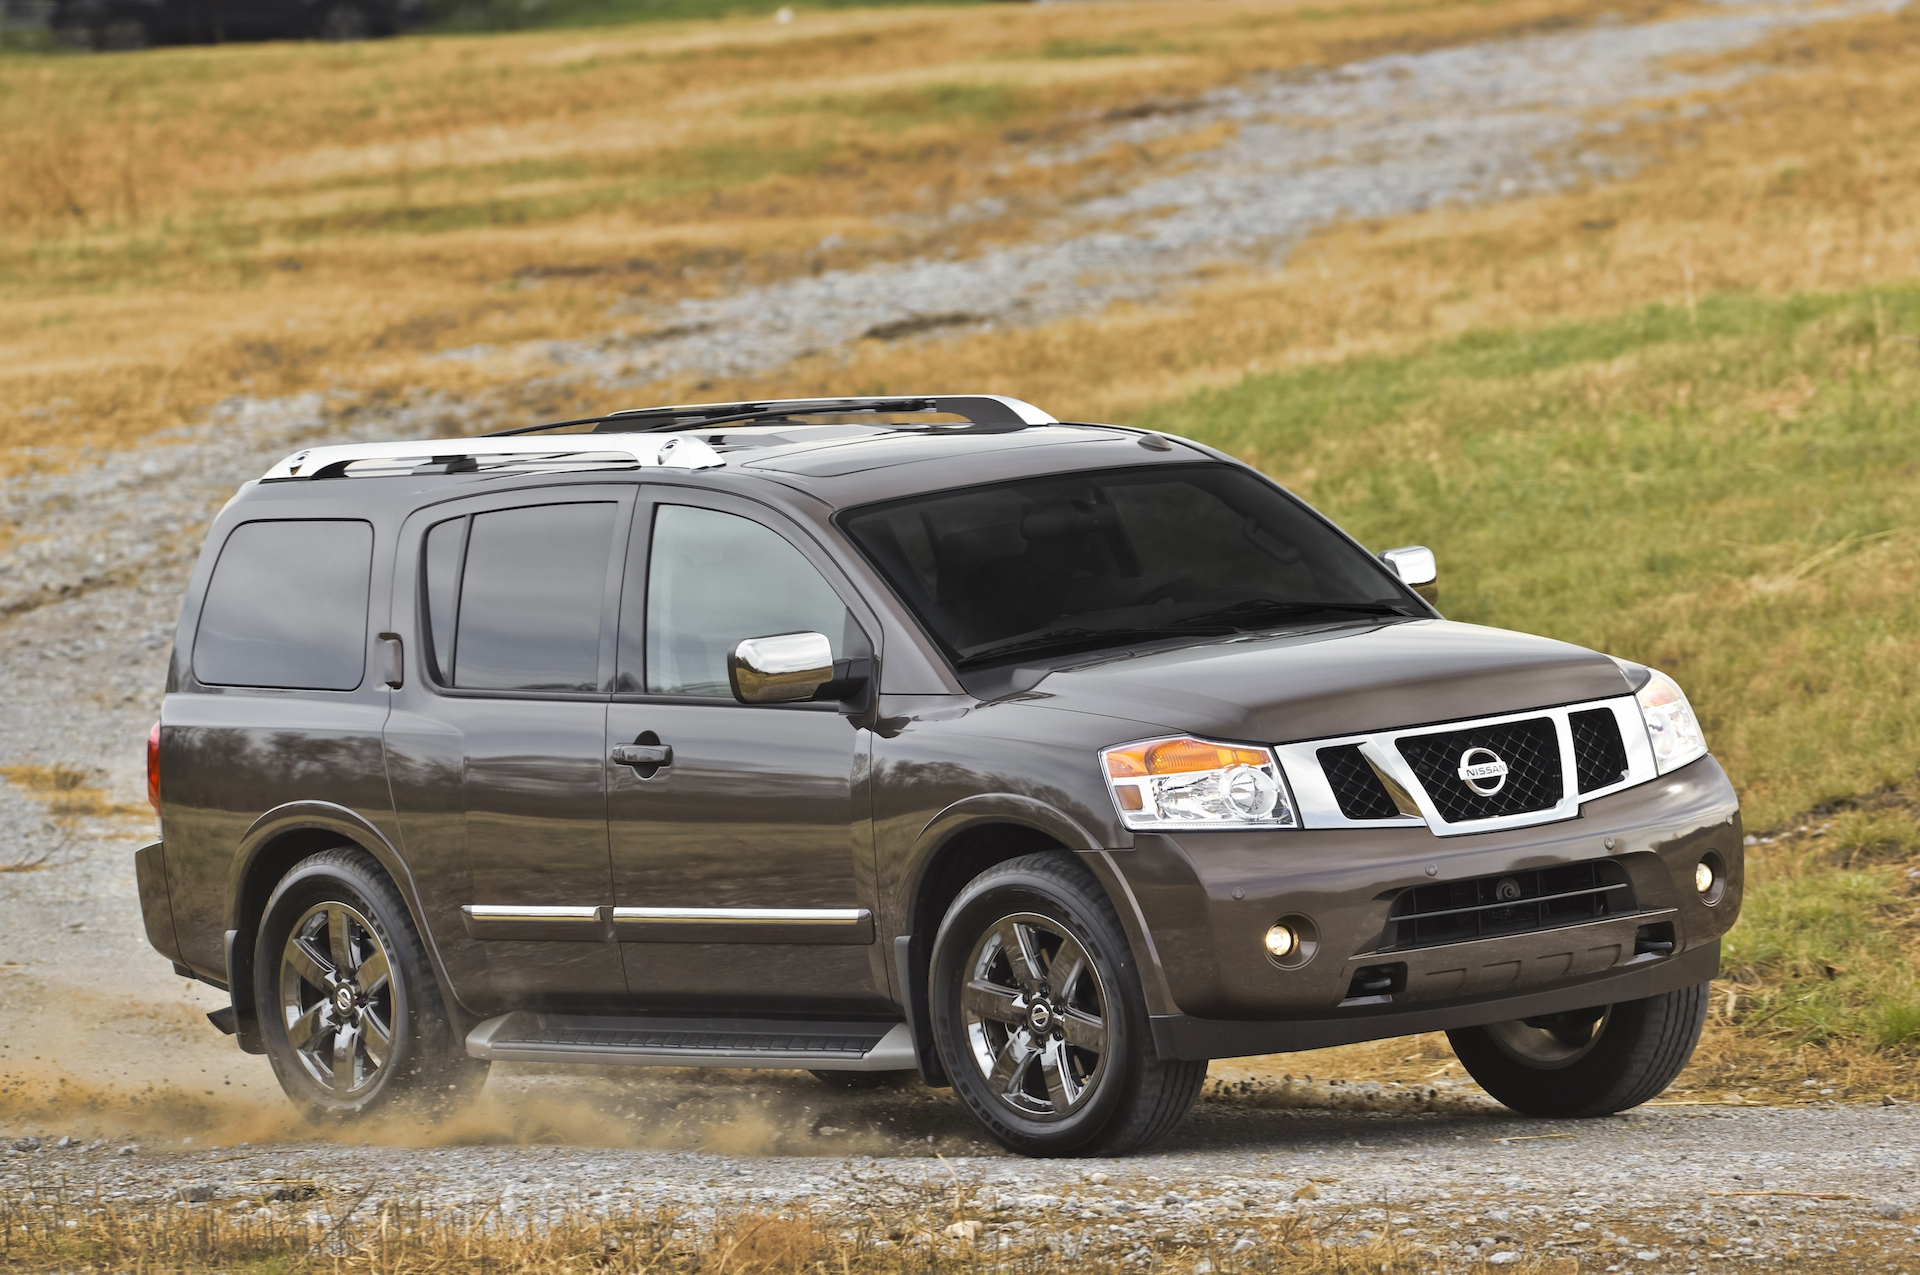 Kia Of Columbus >> 2015 Nissan Armada Review, Ratings, Specs, Prices, and ...